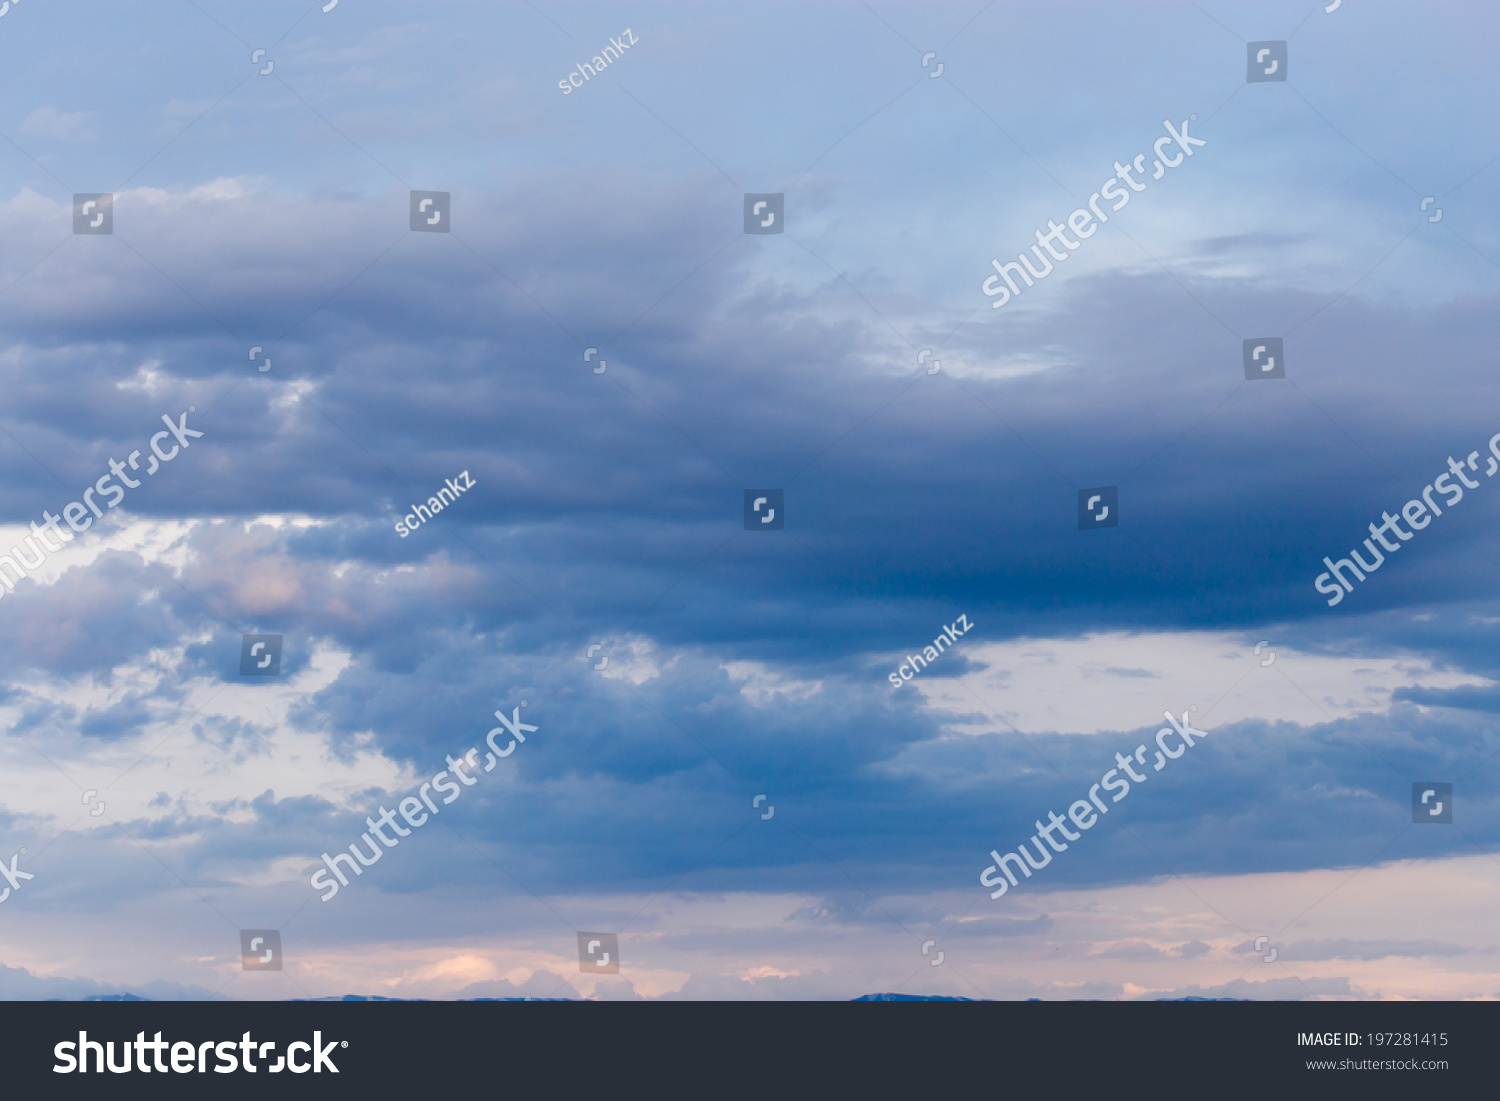 beautiful background of clouds #197281415